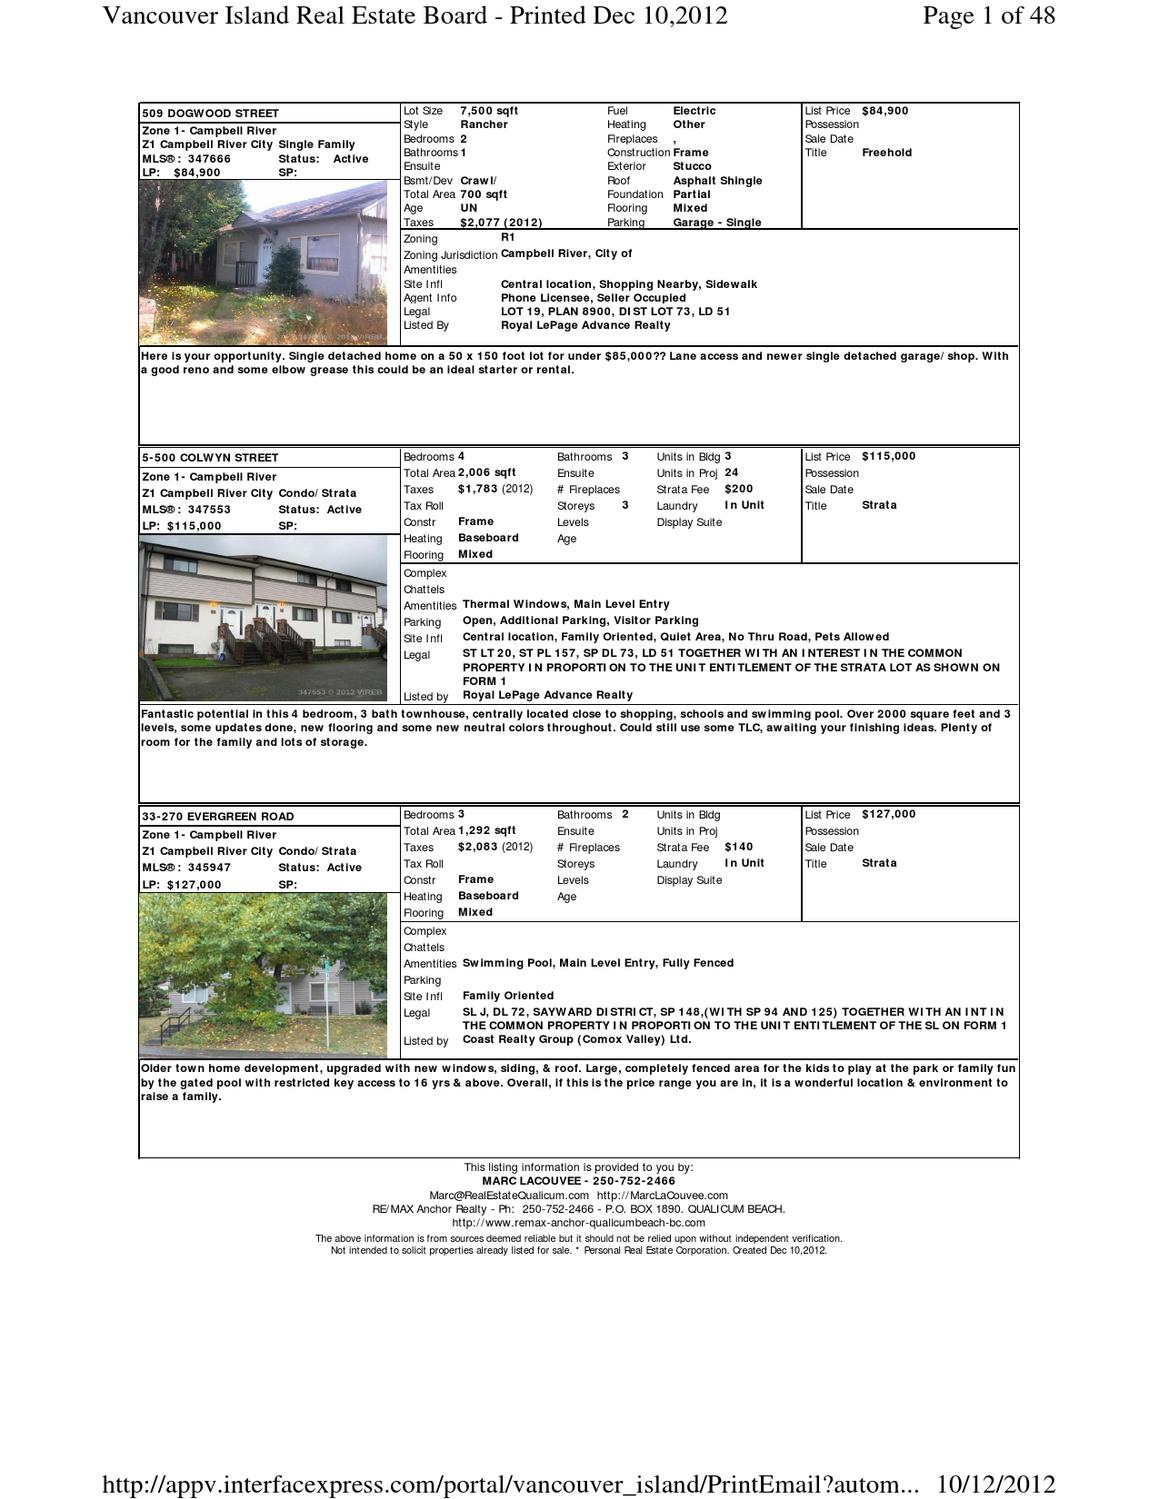 Foreclosure Vancouver Island Bc